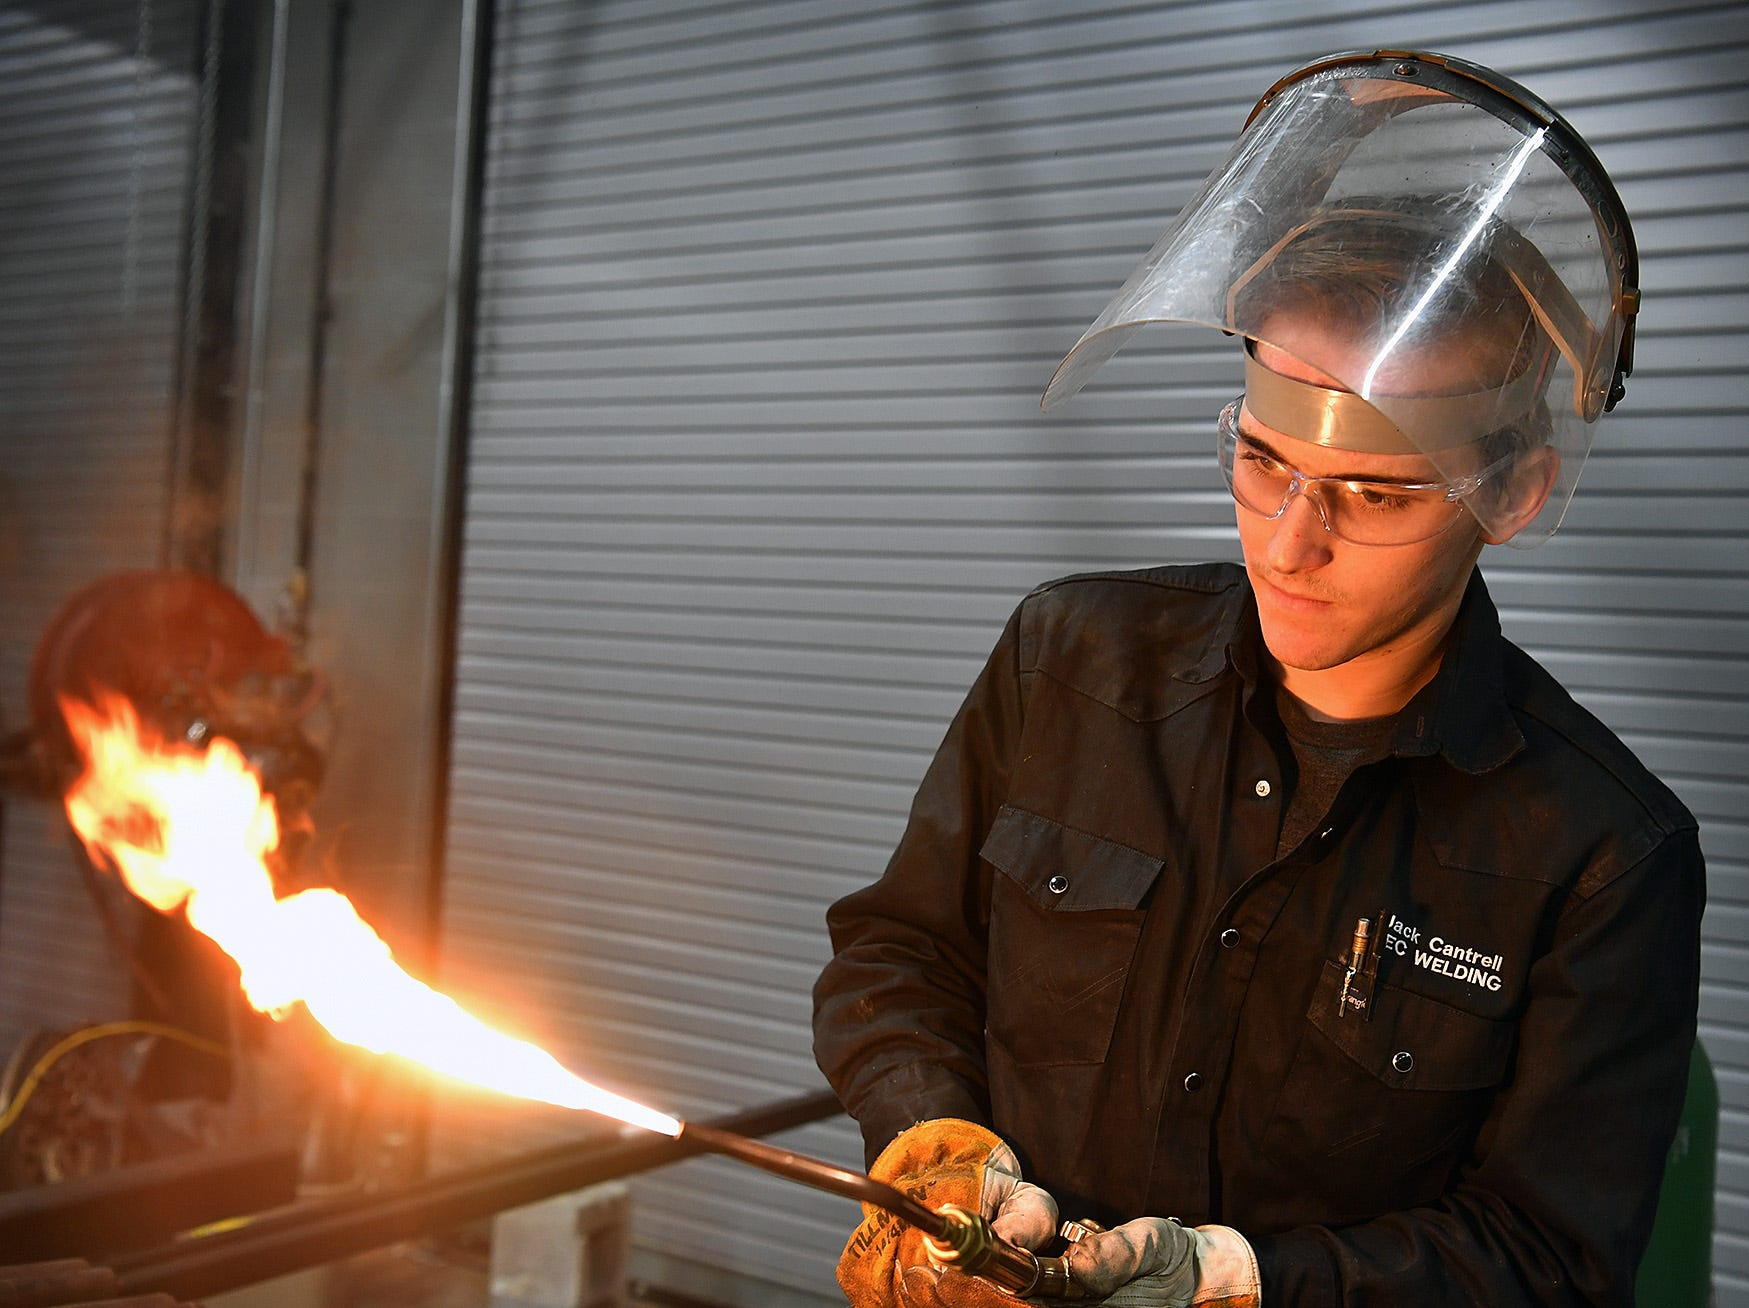 Jack Cantrell, a welding student at the Career Education Center, fires up a torch to work on on a brass sculpture he's creating for the Skills USA competition in Waco, Texas February 22.